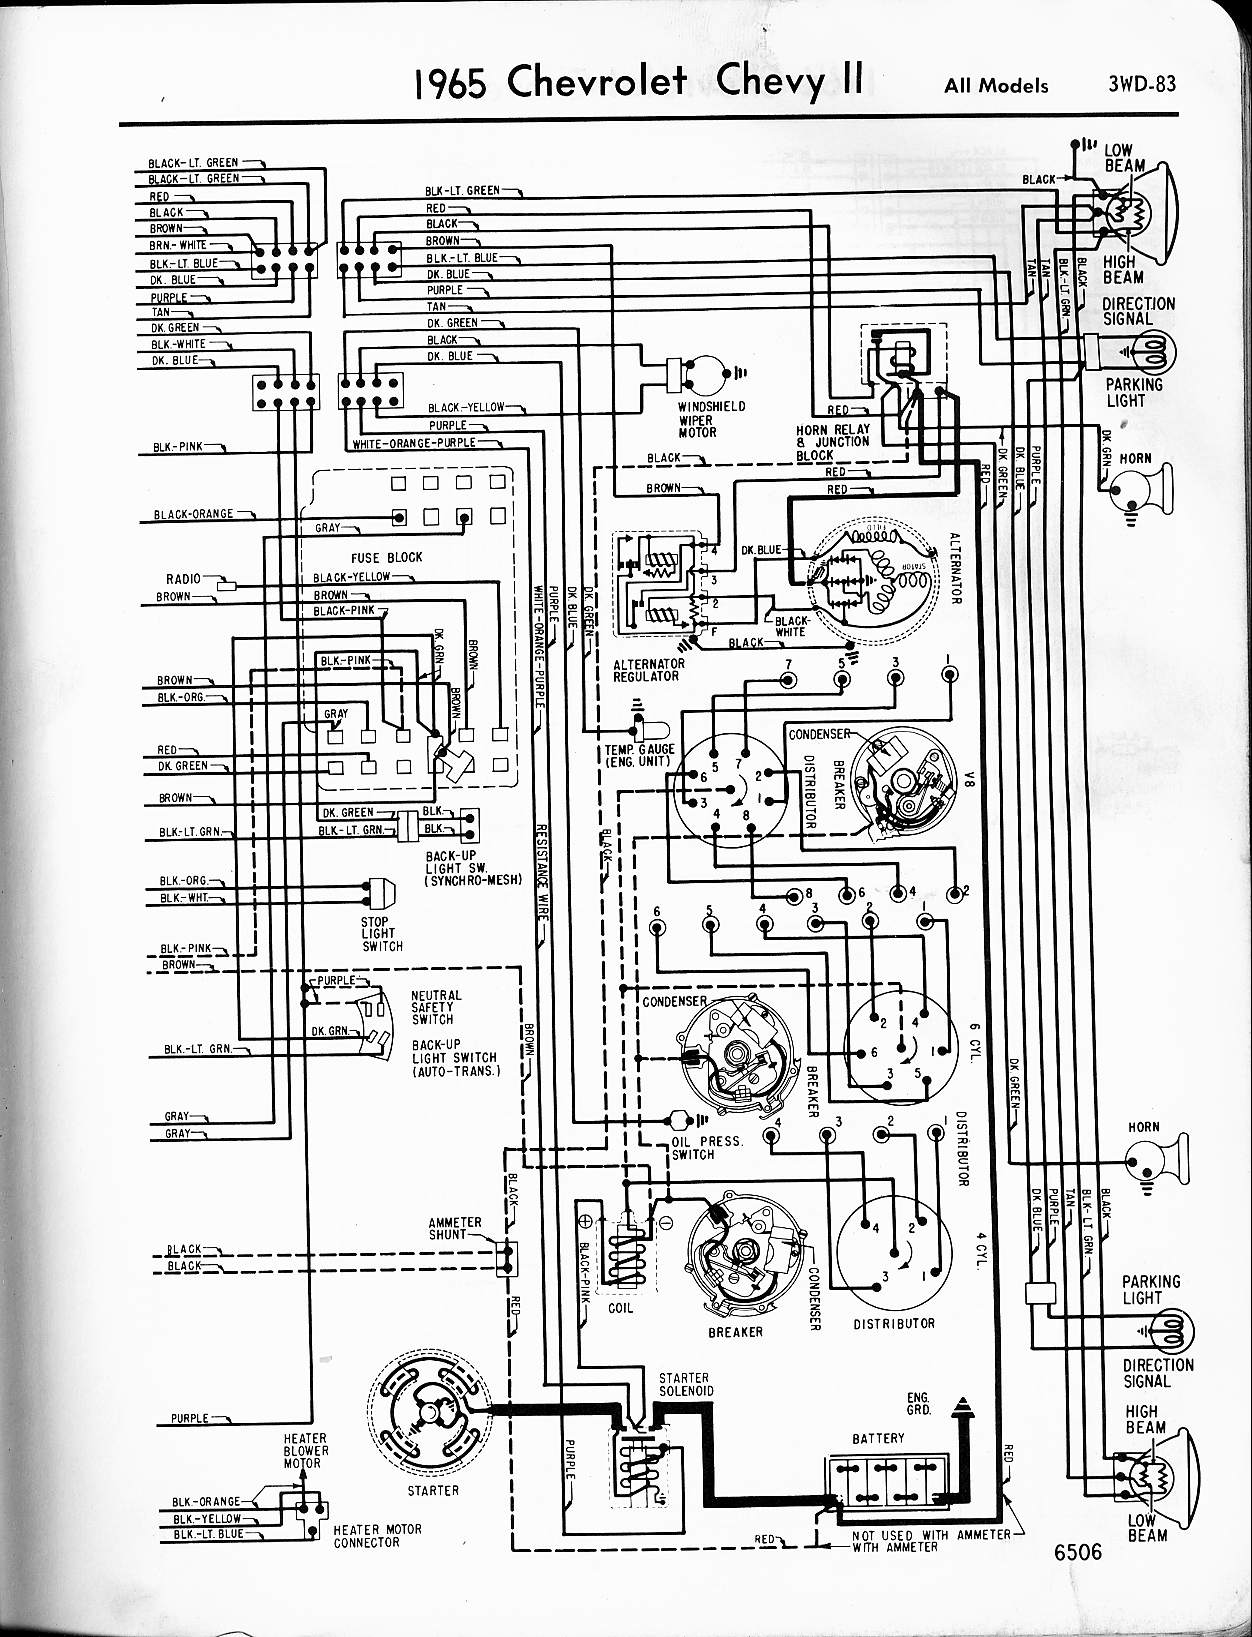 Chevy Lights Wiring Diagram Archive Of Automotive Chevrolet Colorado Diagrams Rh Wizard Com